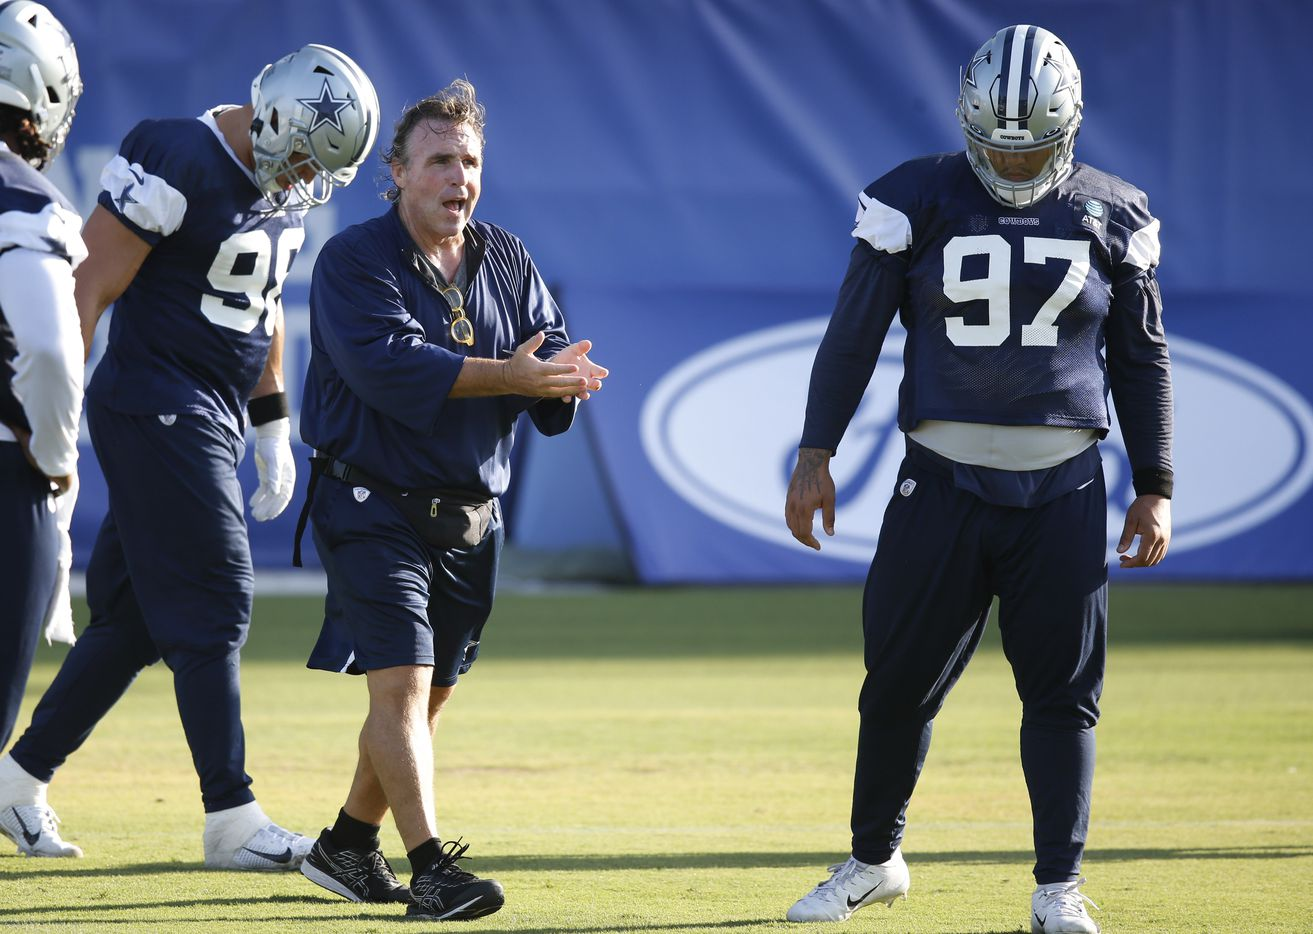 Dallas Cowboys defensive line coach Jim Tomsula works with the defensive line during the first day of training camp at Dallas Cowboys headquarters at The Star in Frisco, Texas on Friday, August 14, 2020. (Vernon Bryant/The Dallas Morning News)